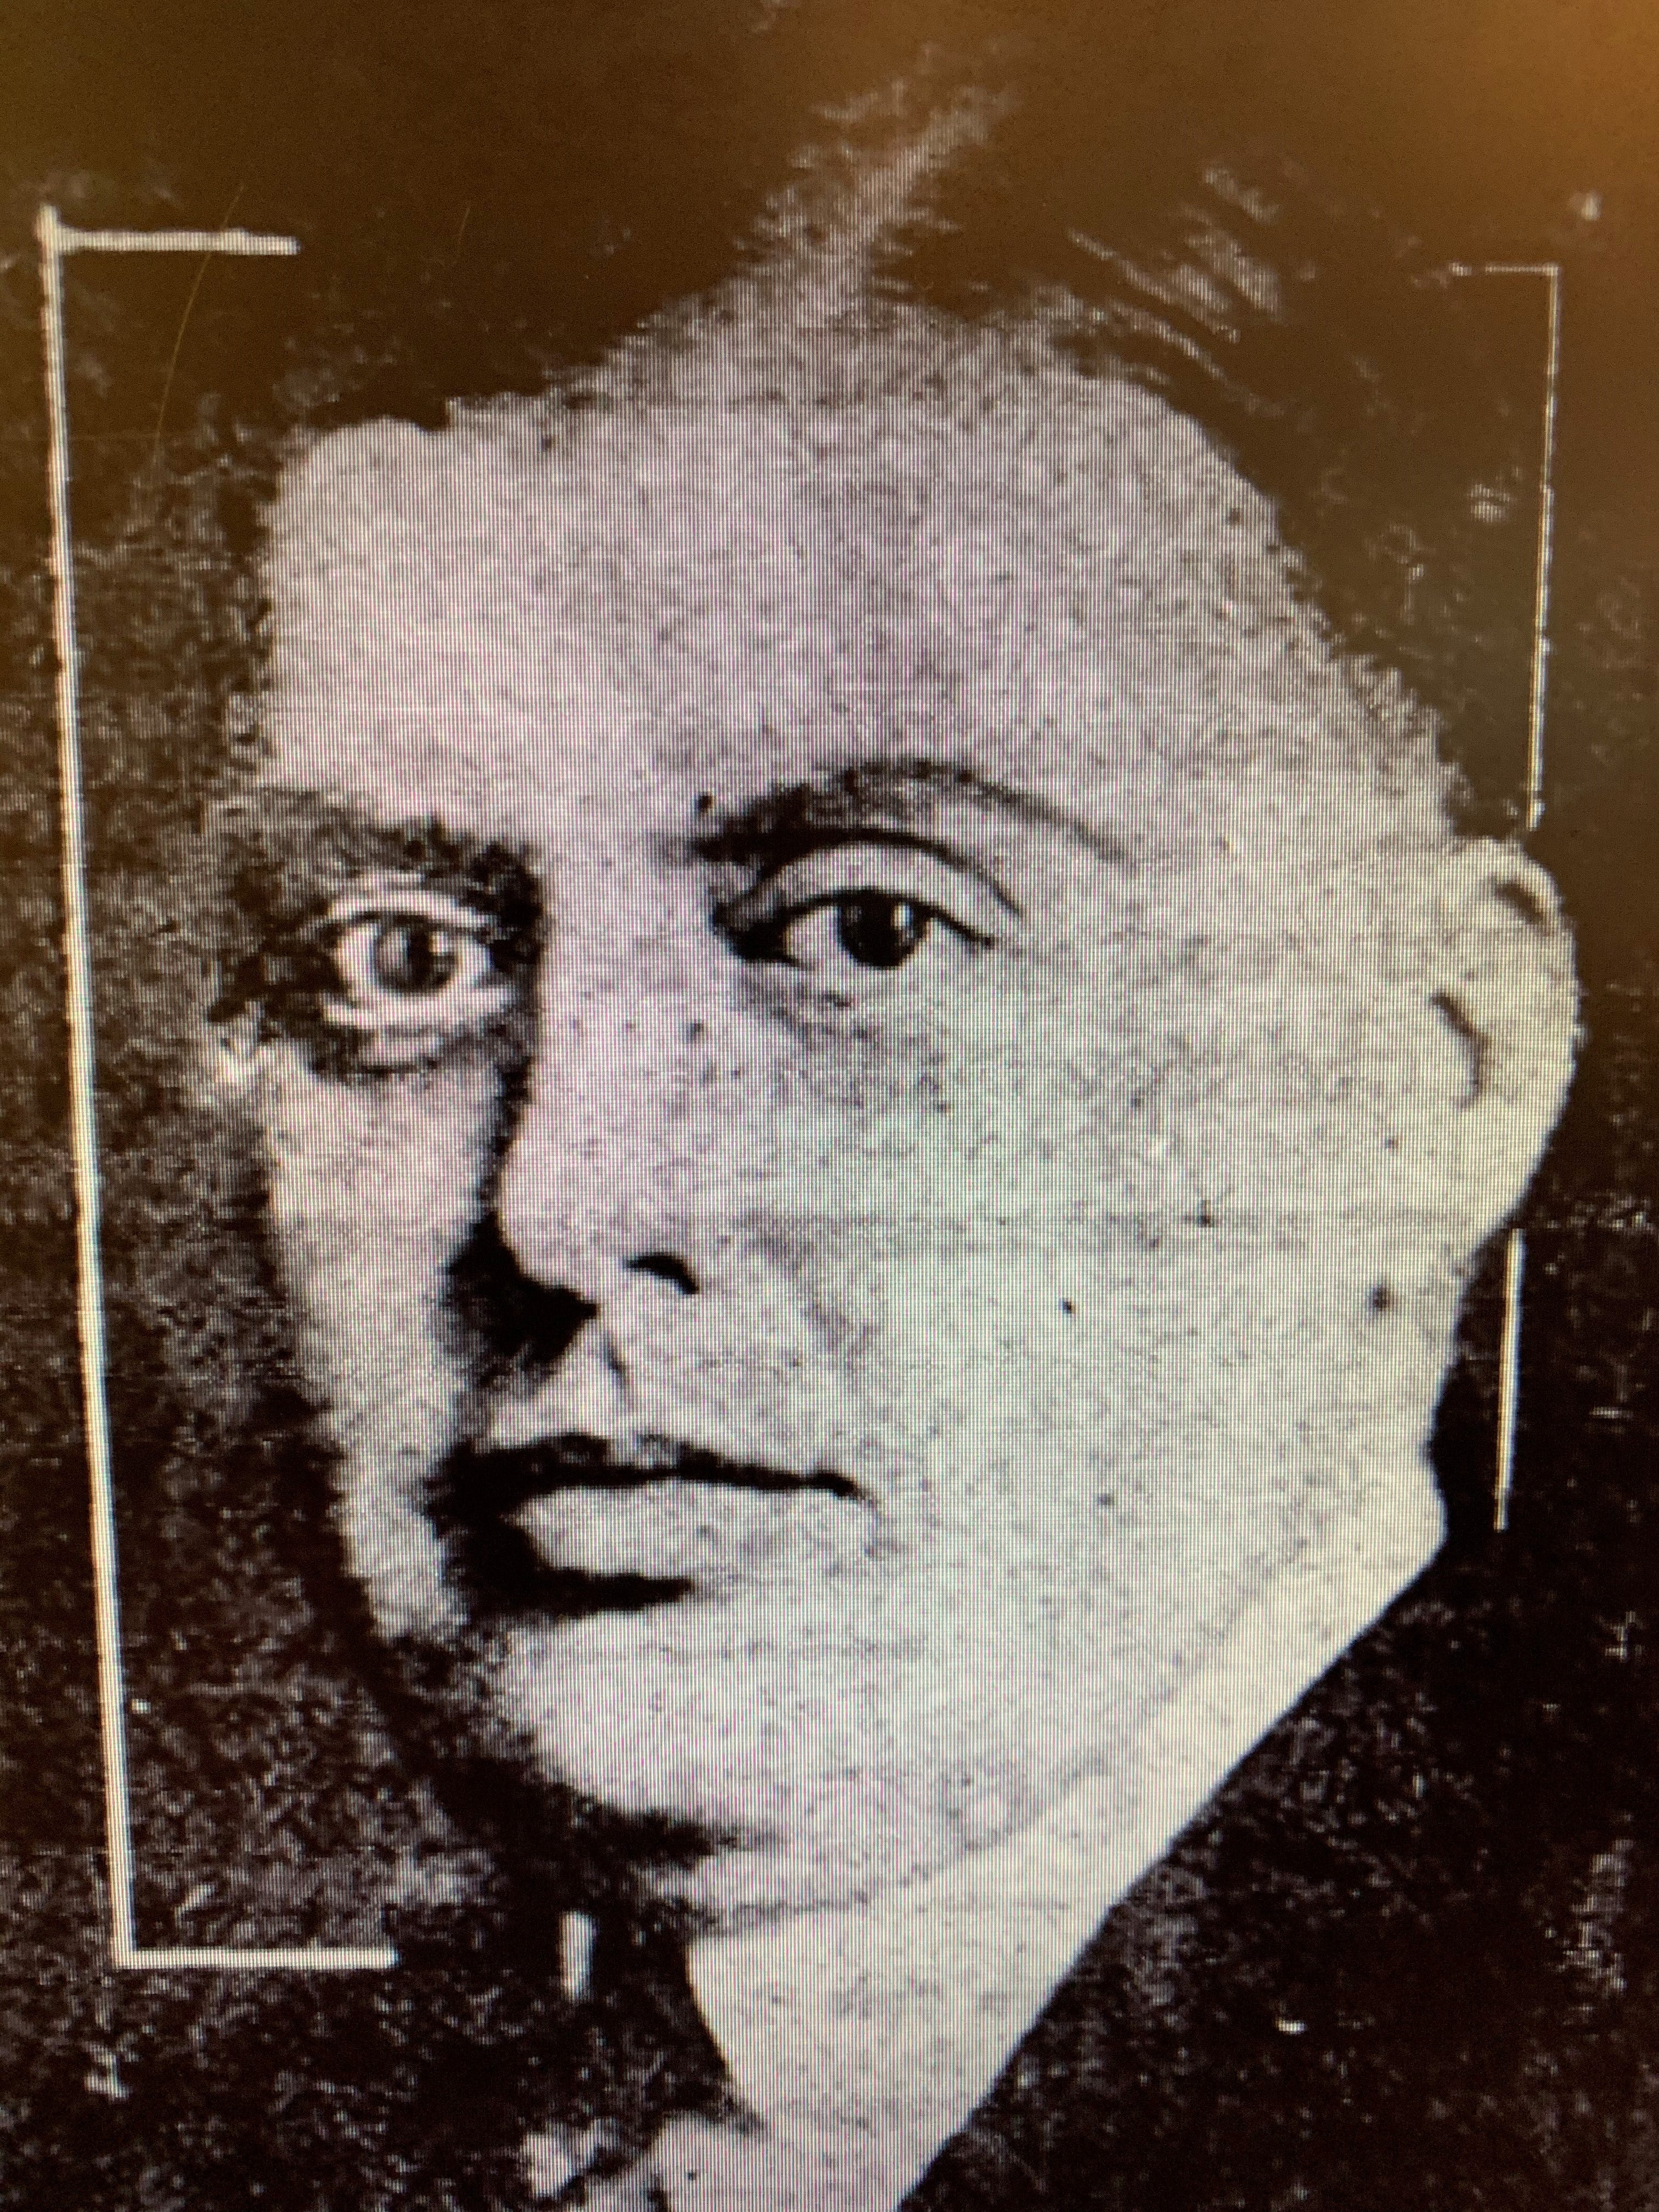 Ansel Wold as seen in the January 24, 1926 issue of the Baltimore Sun. Wold was executive clerk of Congress' Joint Committee on Printing, and oversaw a major revision of the Biographical Directory of the American Congress, published in 1928.